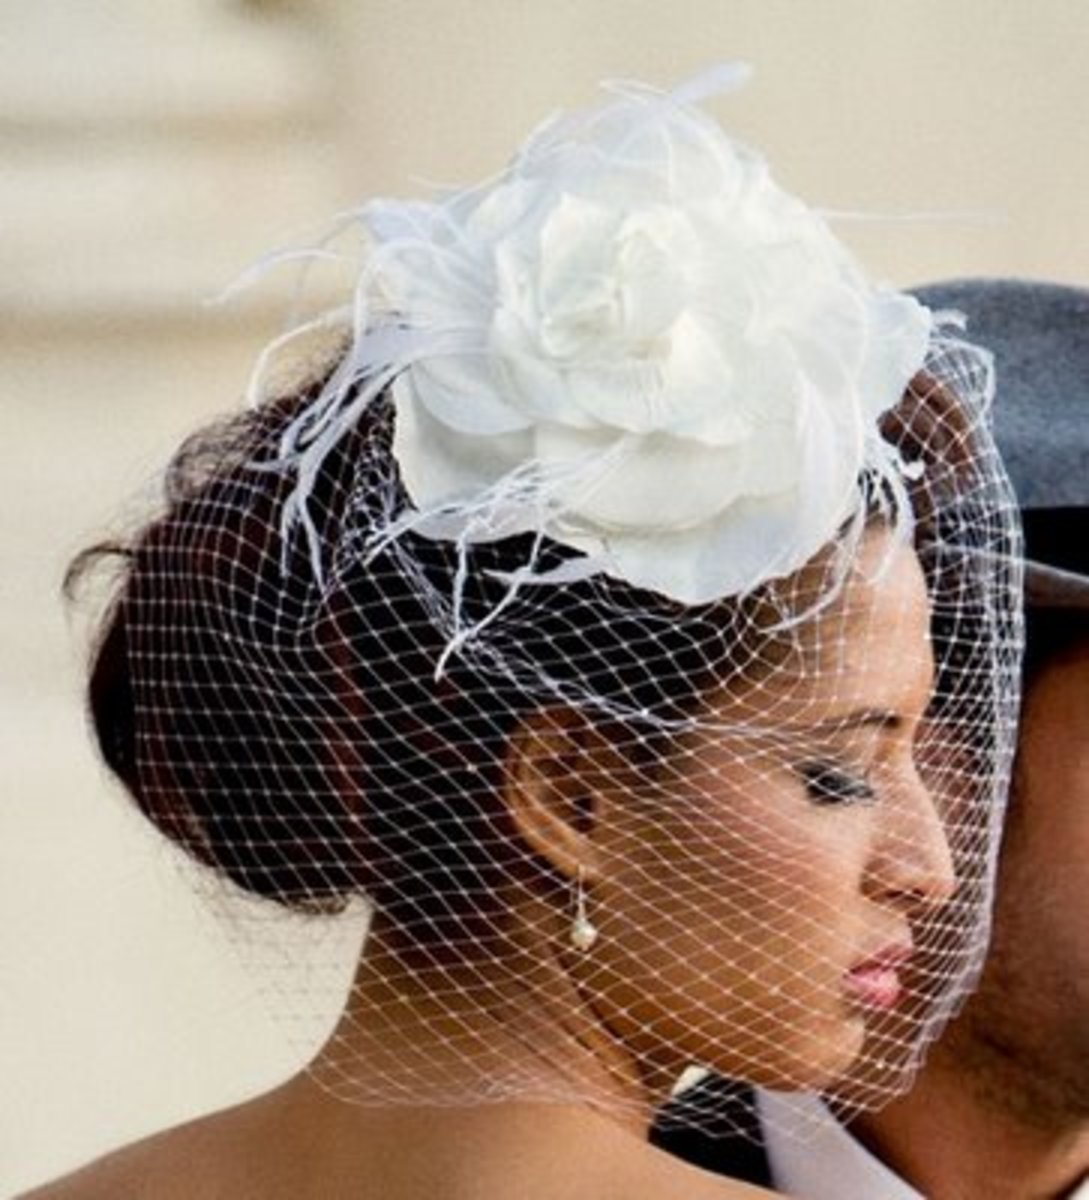 How To Make Your Own Hair Fascinator With Bird Cage Veil